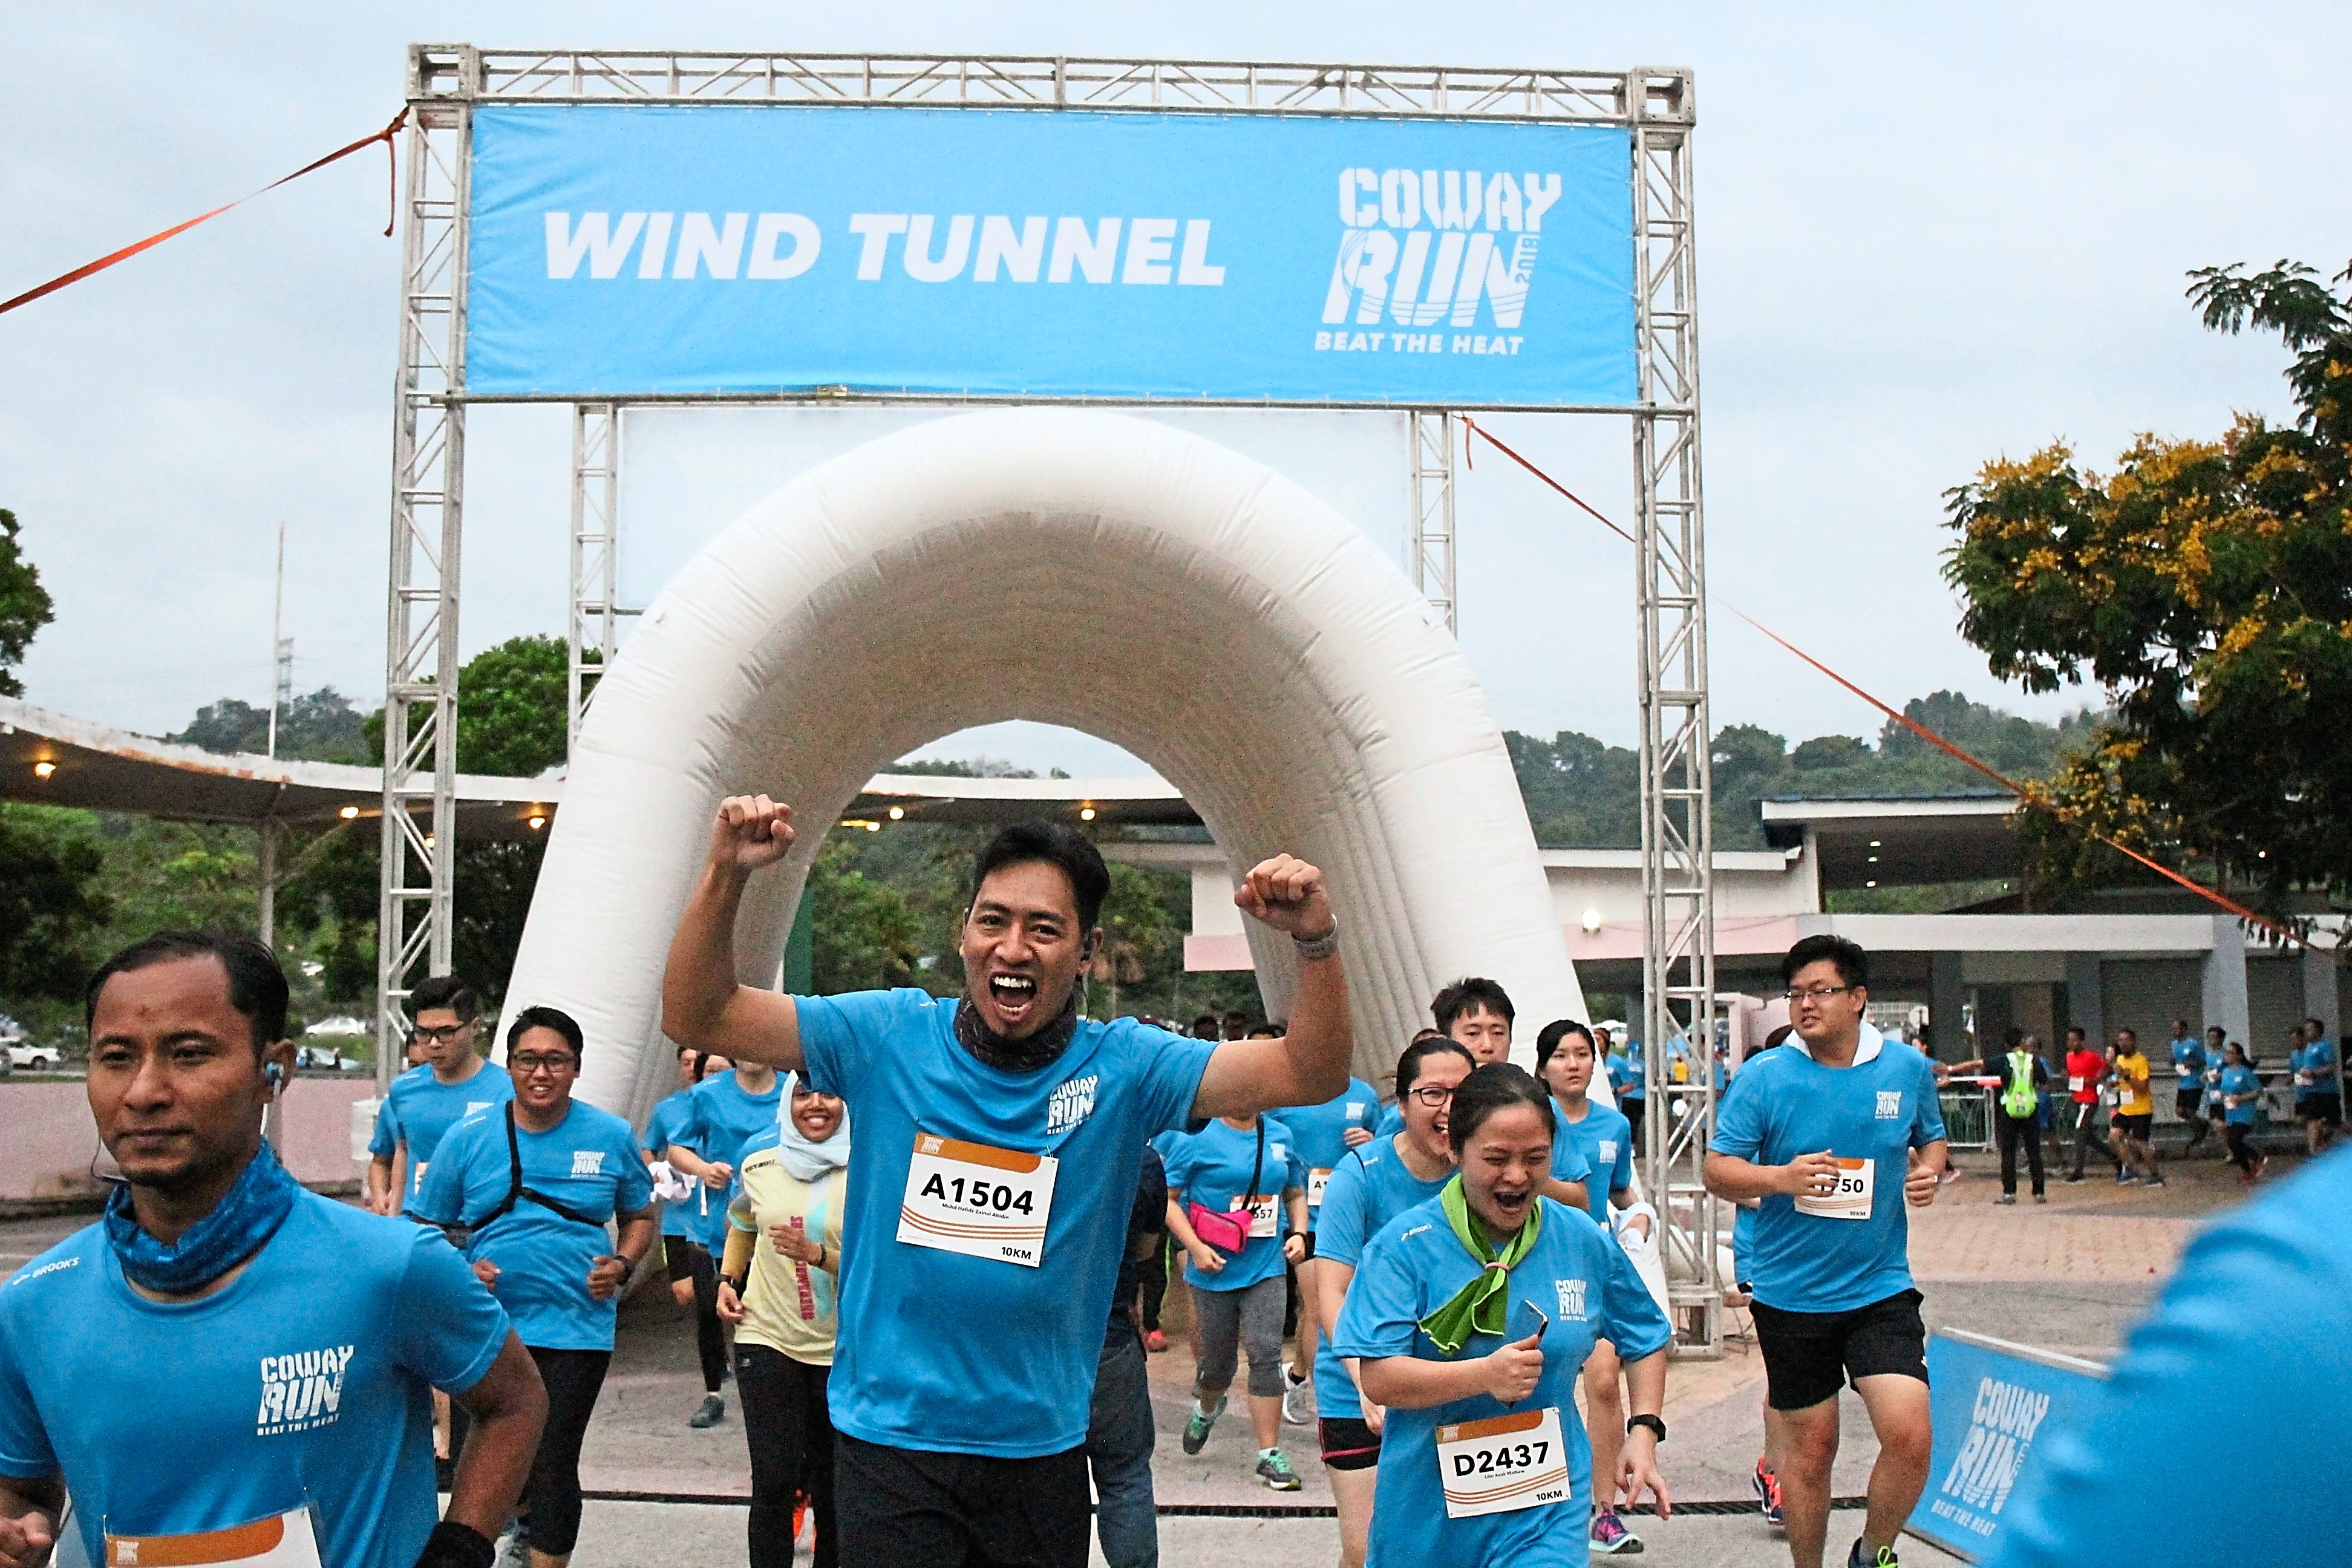 A participant all pumped up after passing under a cooling wind tunnel at the Coway Run 2018 held at Serdang.